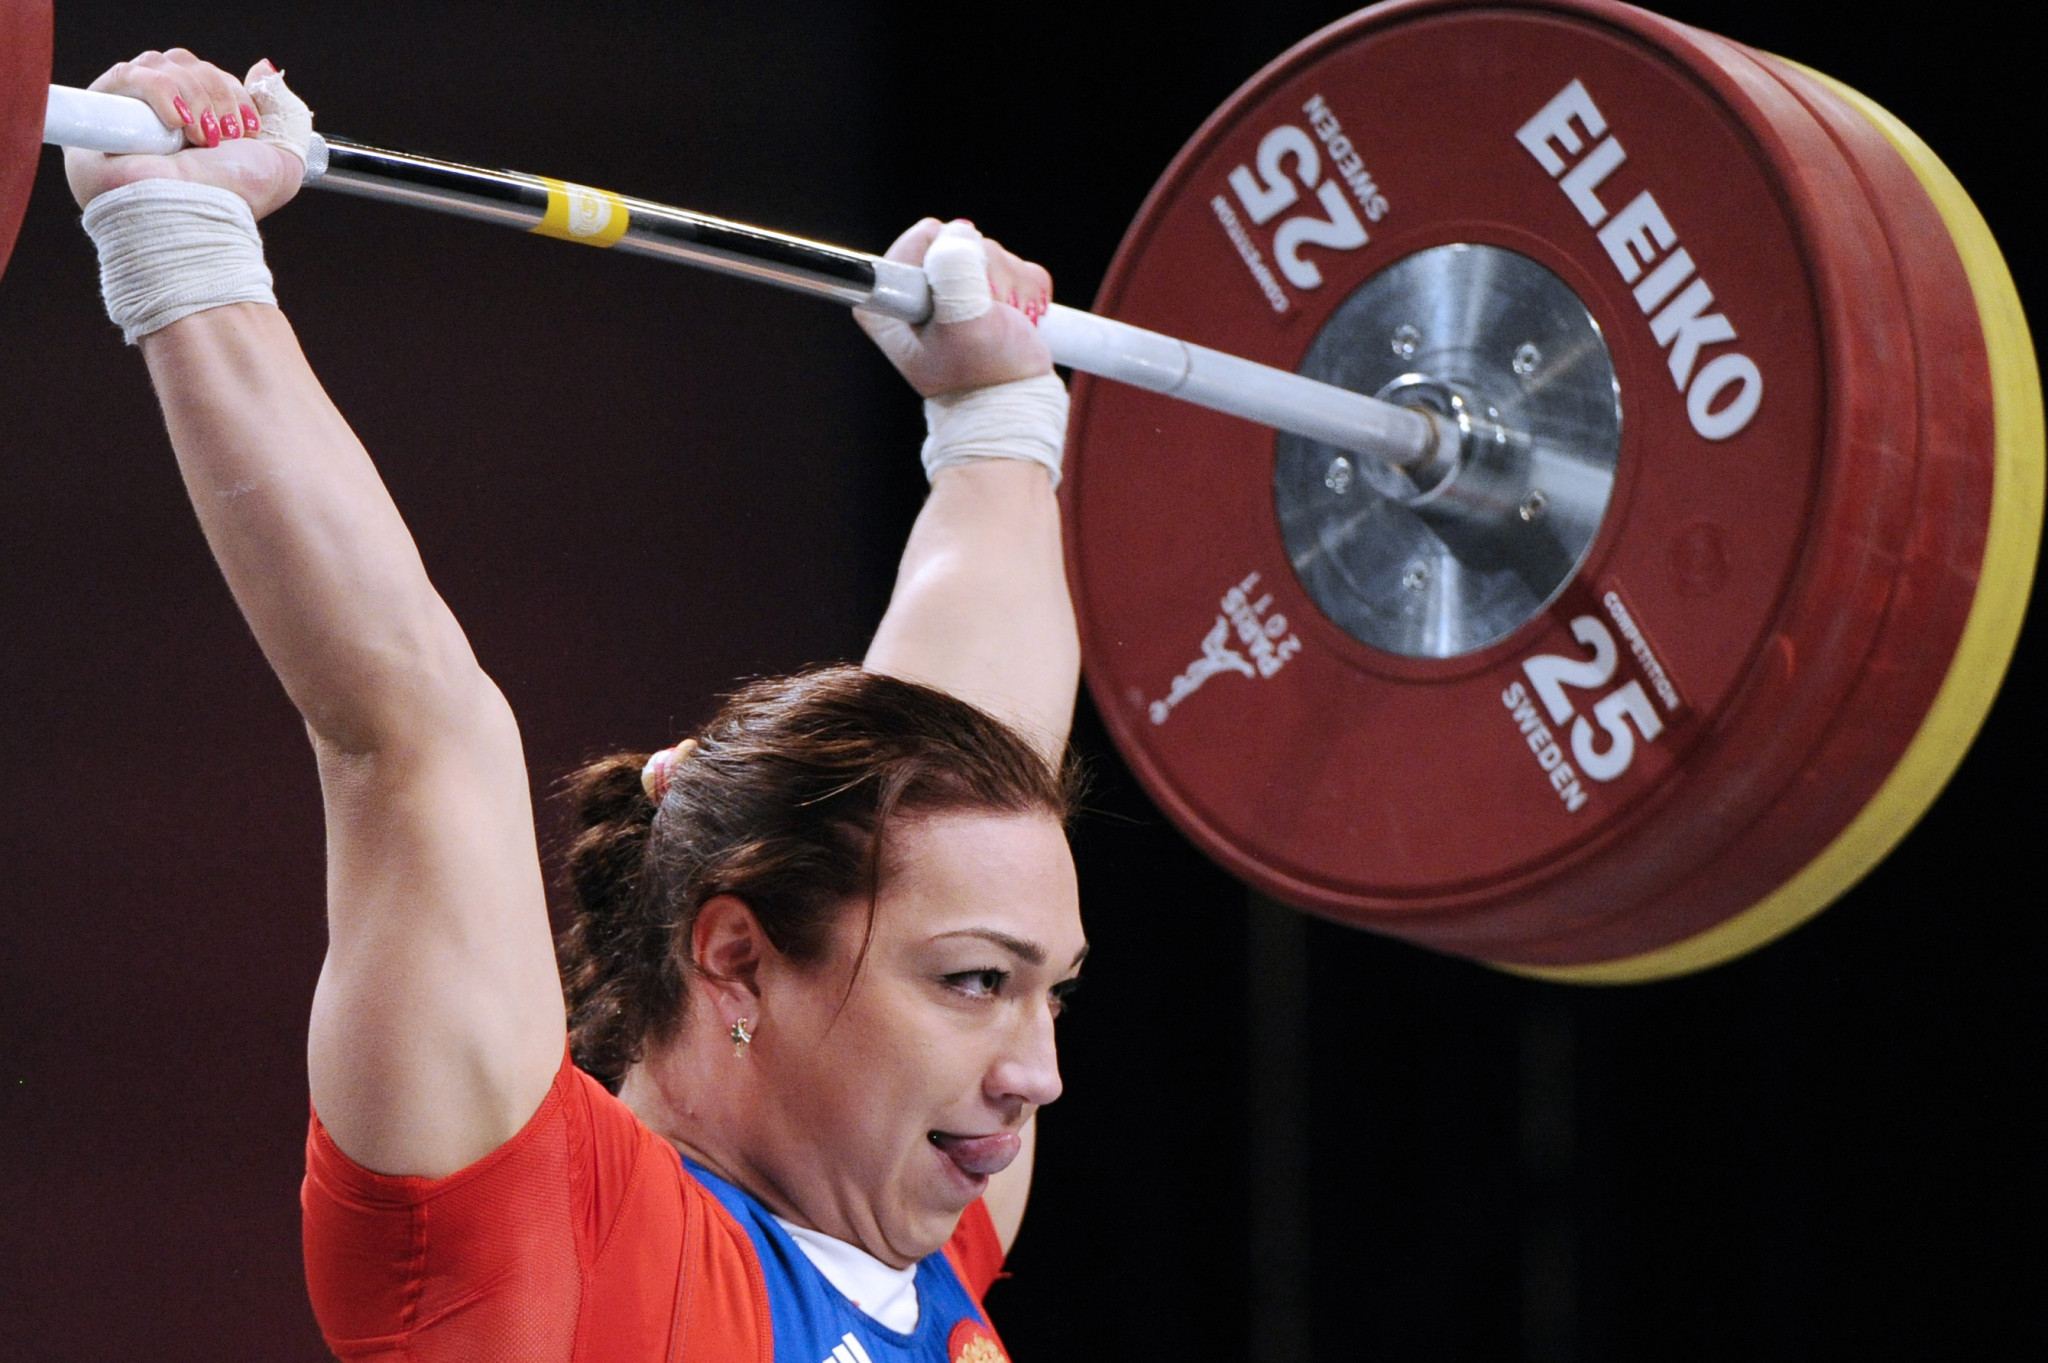 Nadezda Evstyukhina is among the 12 Russian weightlifters provisionally suspended by the IWF ©Getty Images